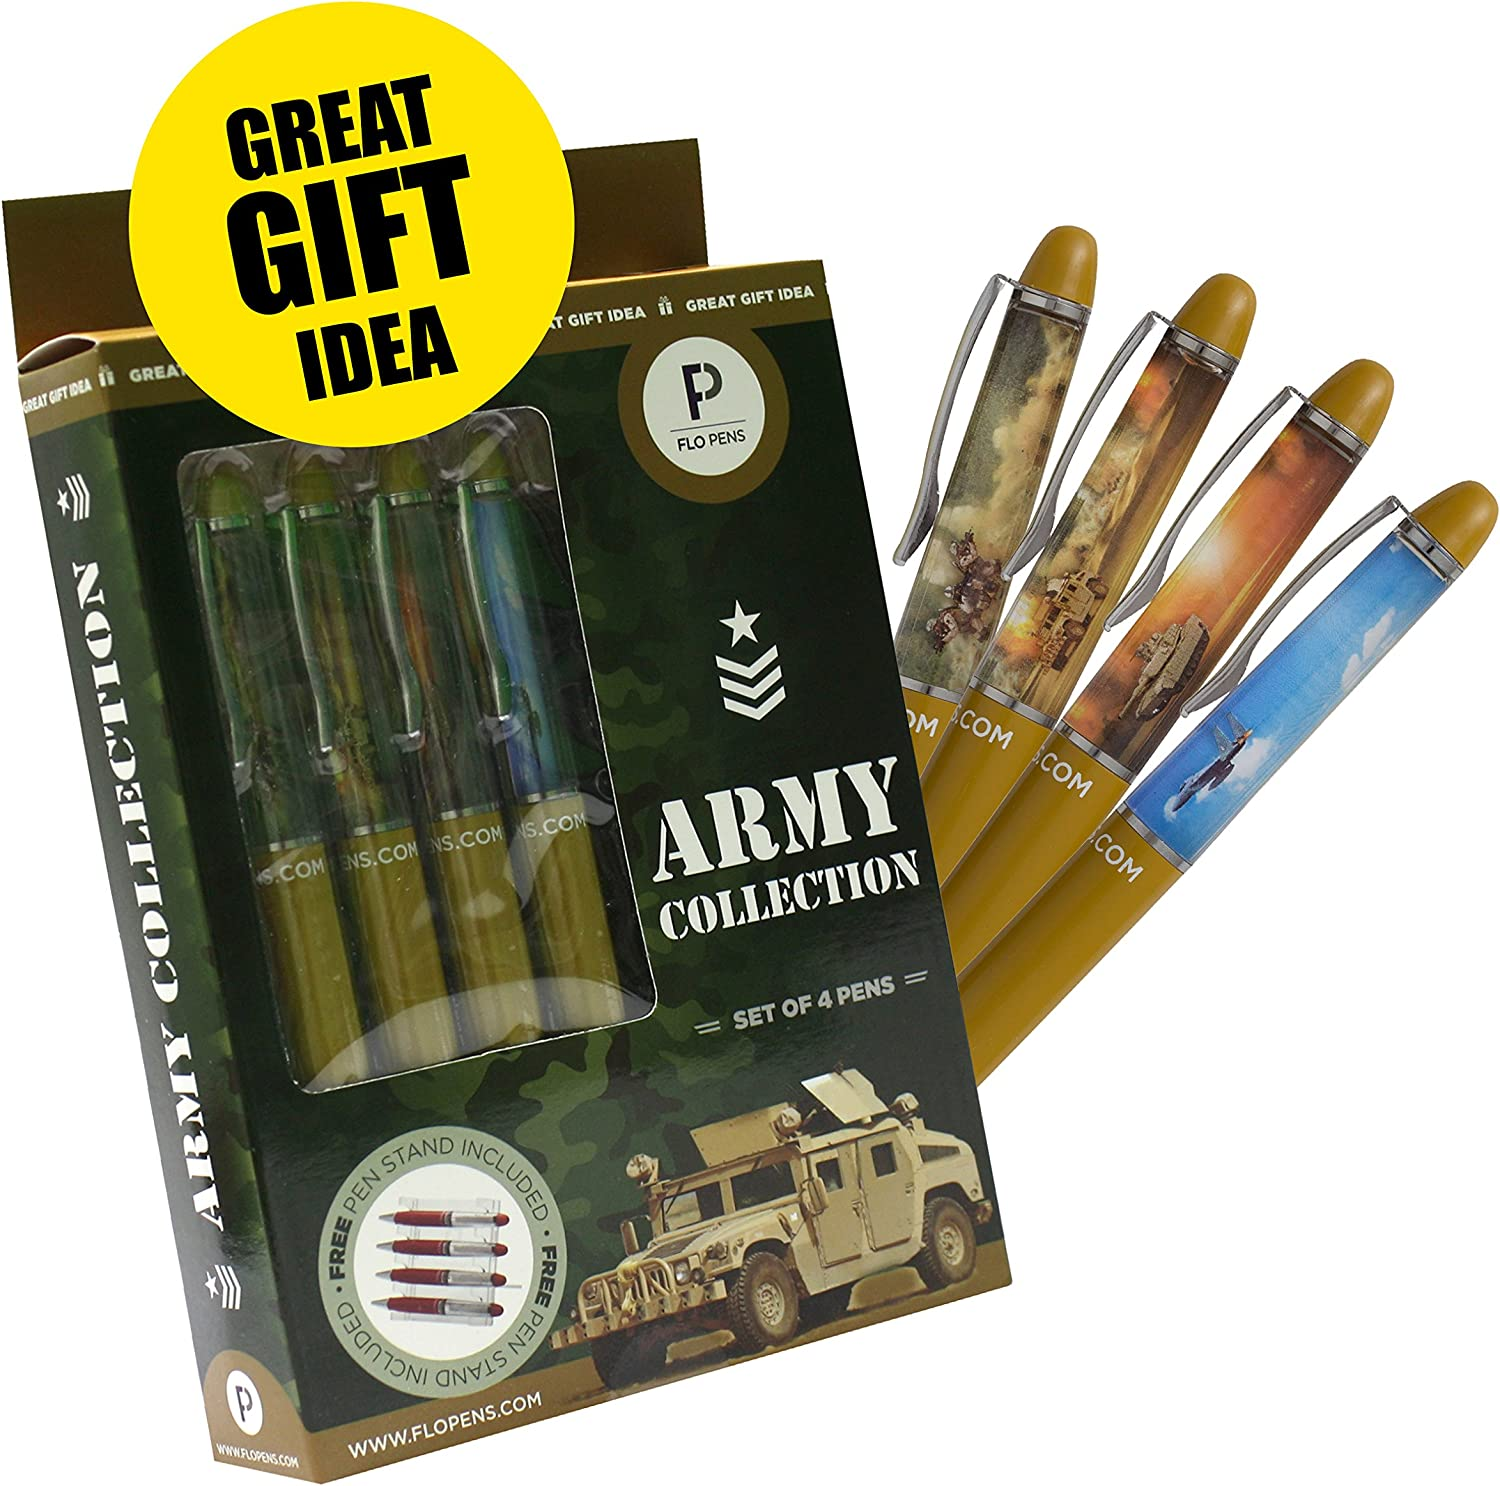 London Souvenir Gift Set Collection Of 4 Custom Designed British Action Floating Pens With Free Pen Display Stand